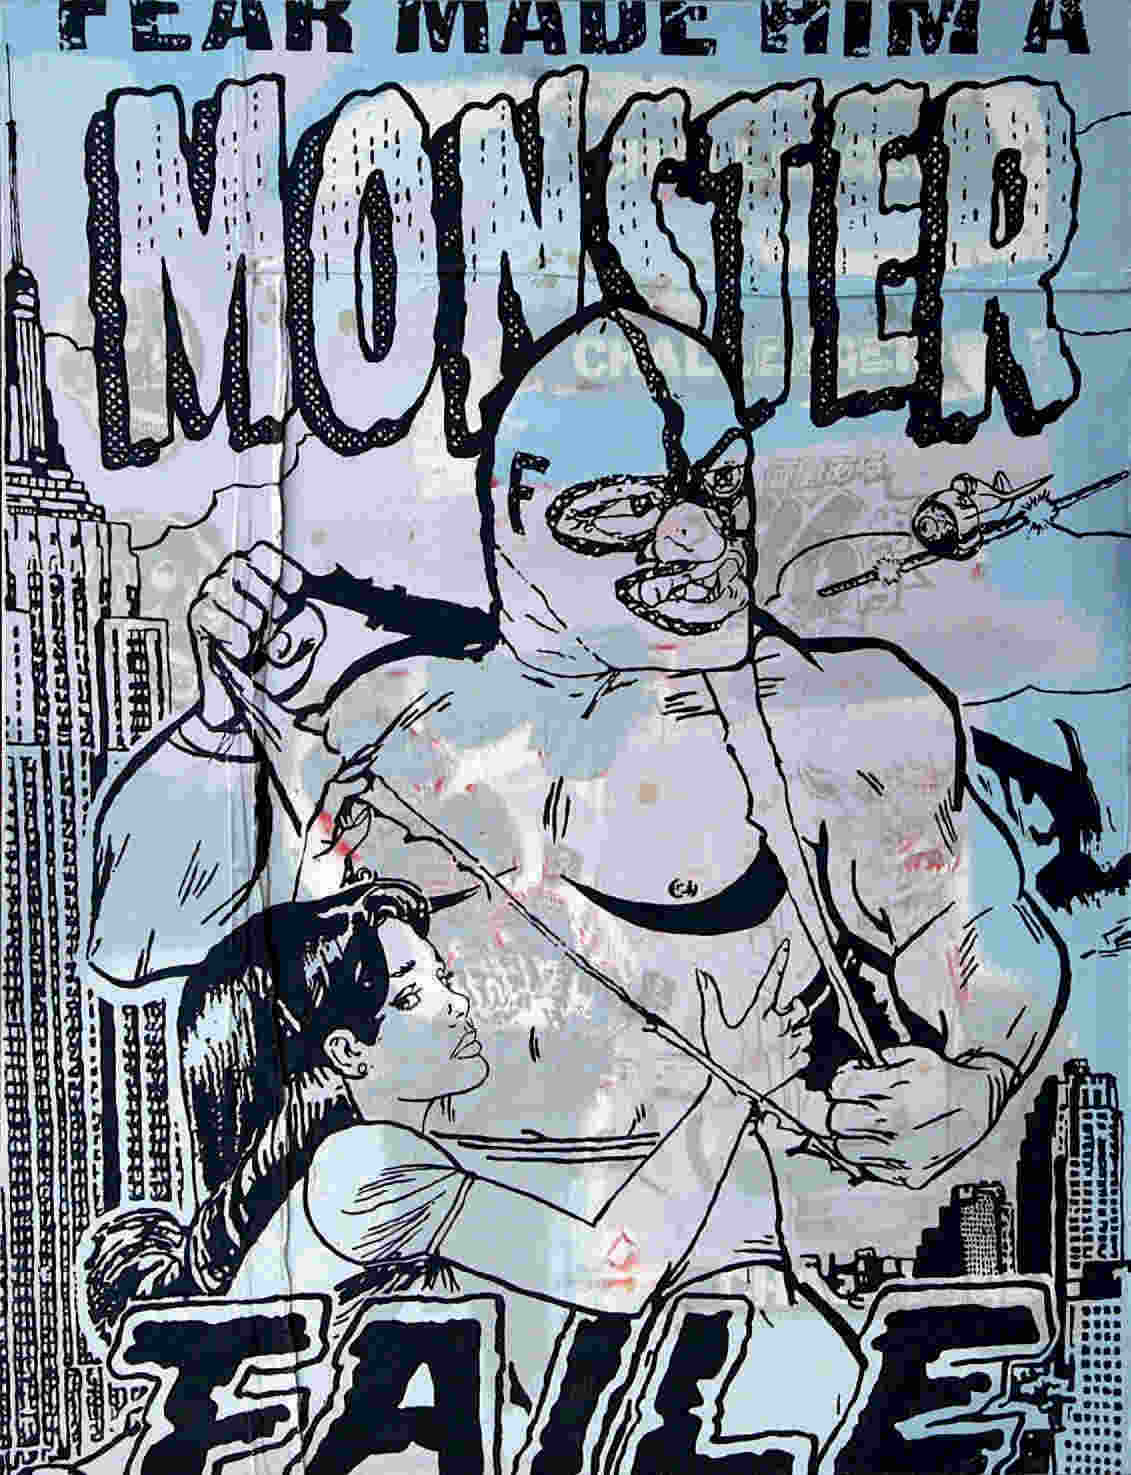 Faile-Fear Made Him a Monster-2005